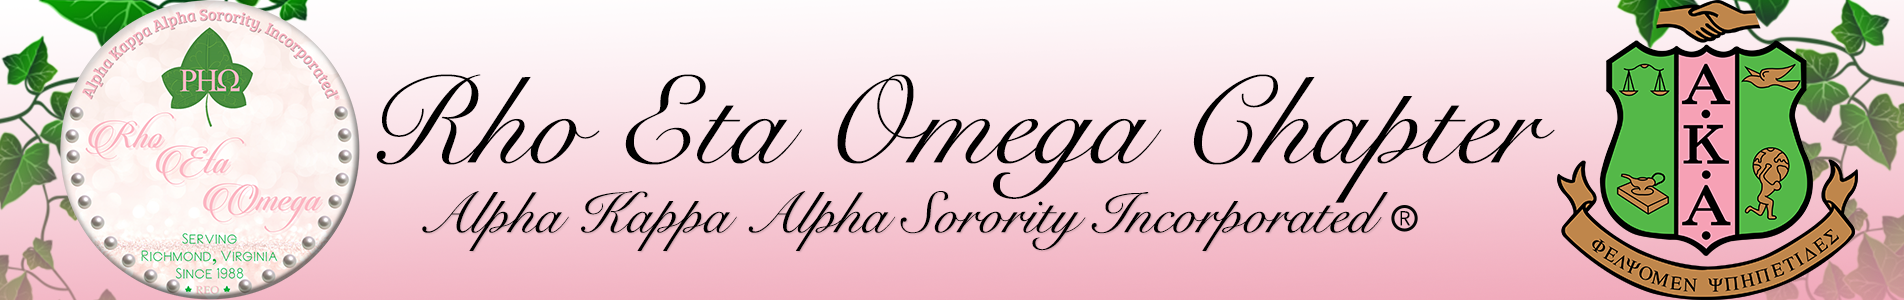 Alpha Kappa Alpha Sorority, Inc.®, Rho Eta Omega Chapter